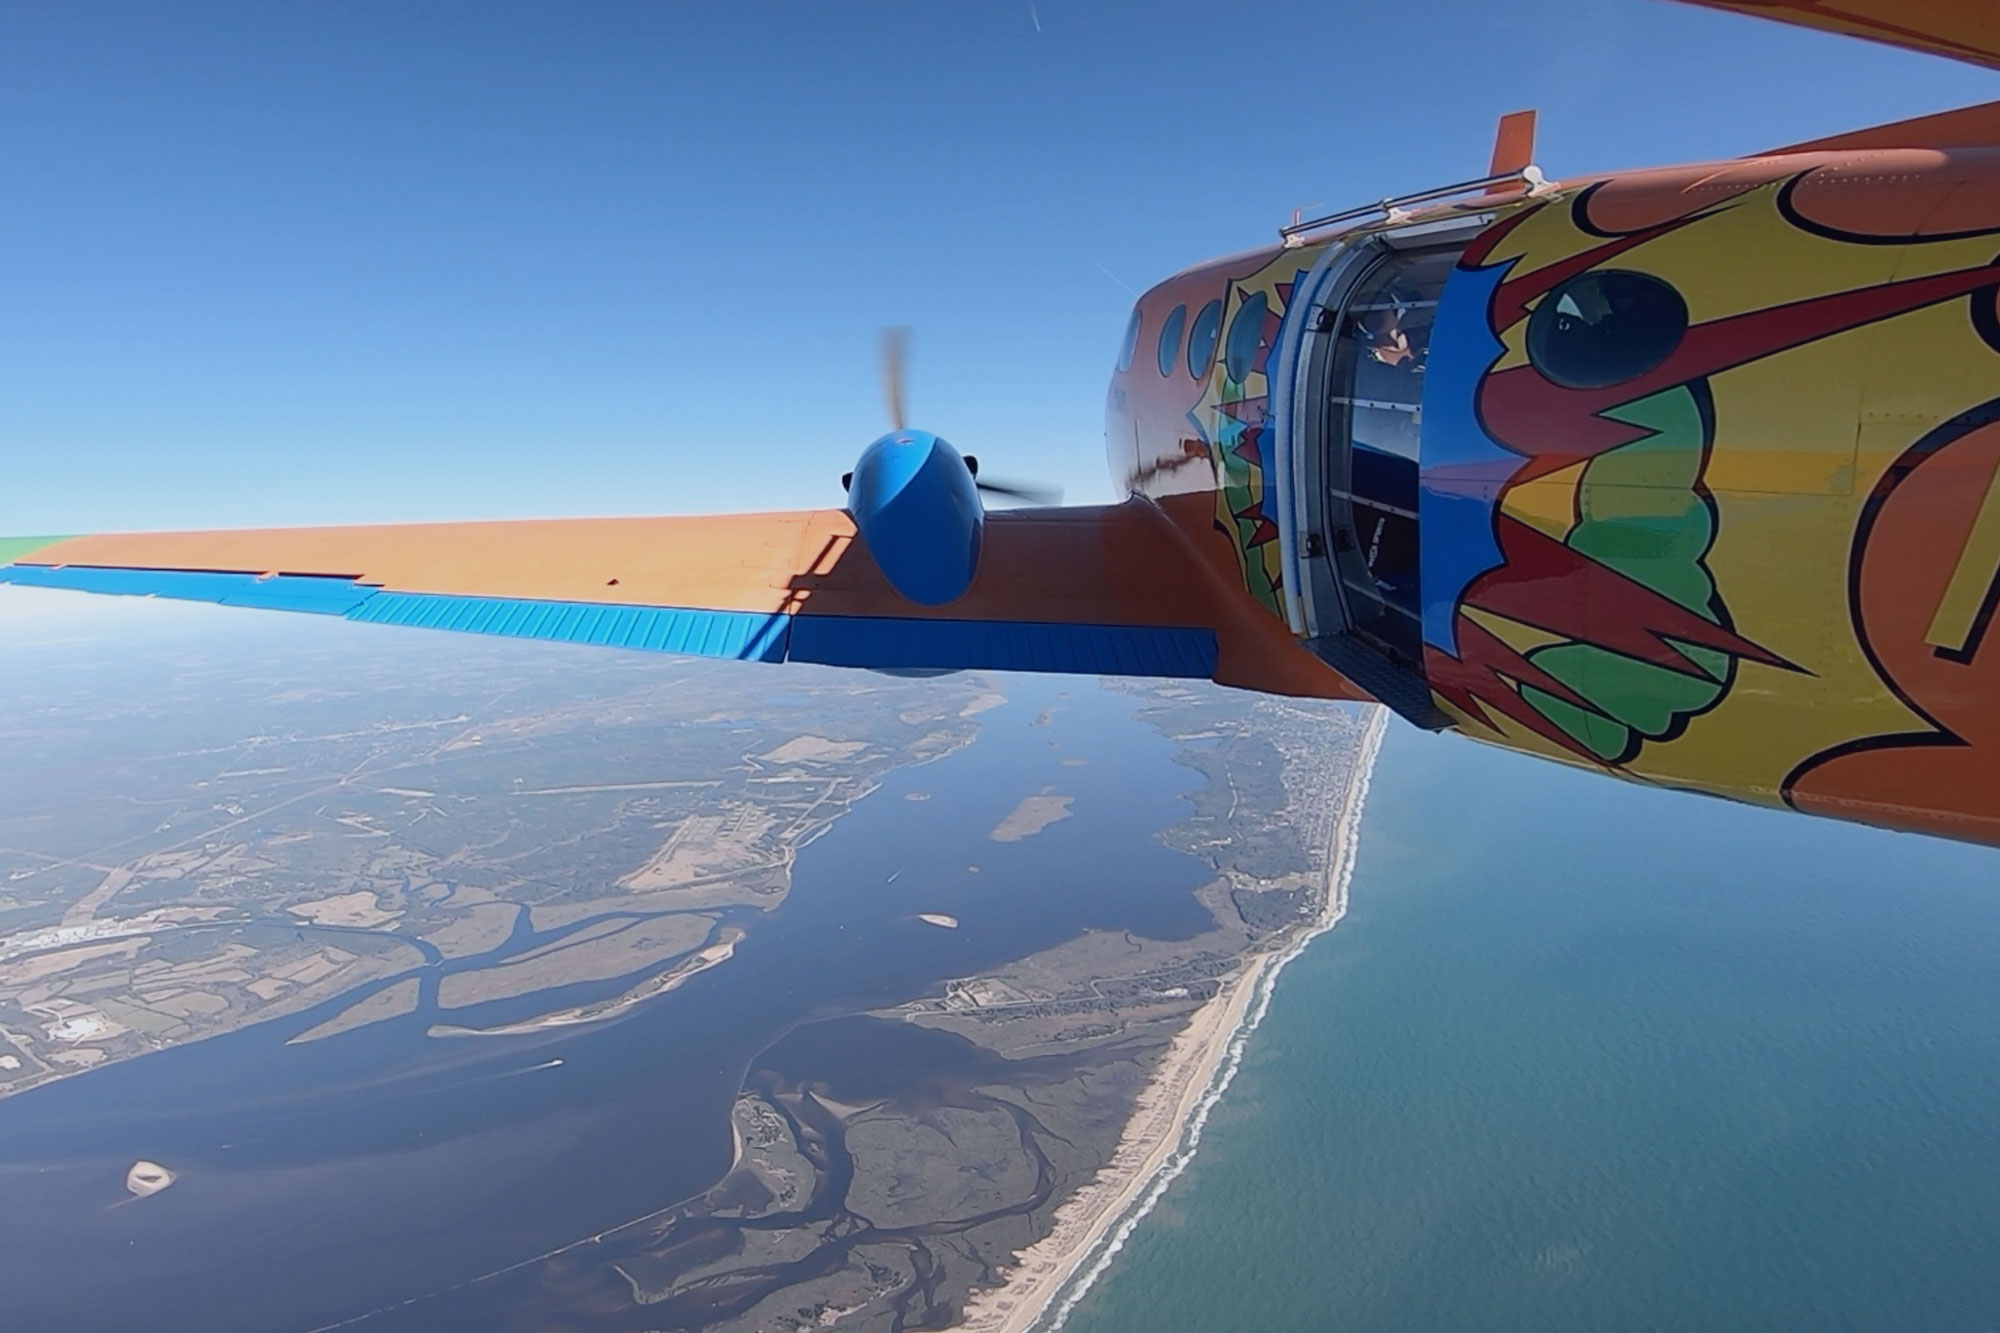 Beechcraft King Air with vibrant orange, blue, red, yellow and green pop art paint job flying over the coast of Oak Island